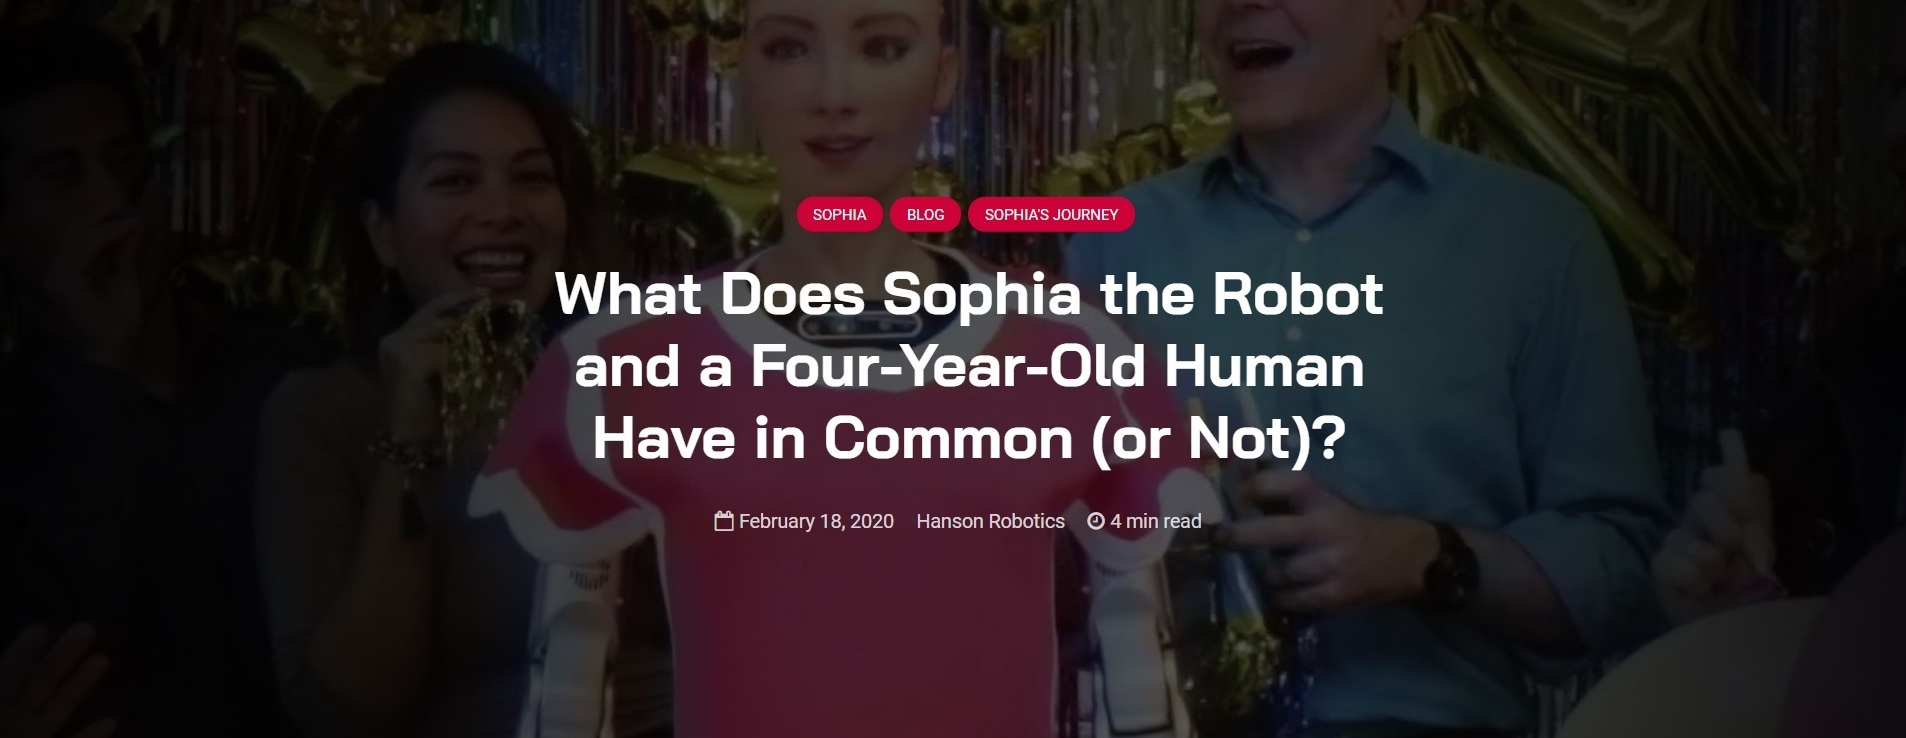 What Does Sophia the Robot and a Four-Year-Old Human Have in Common